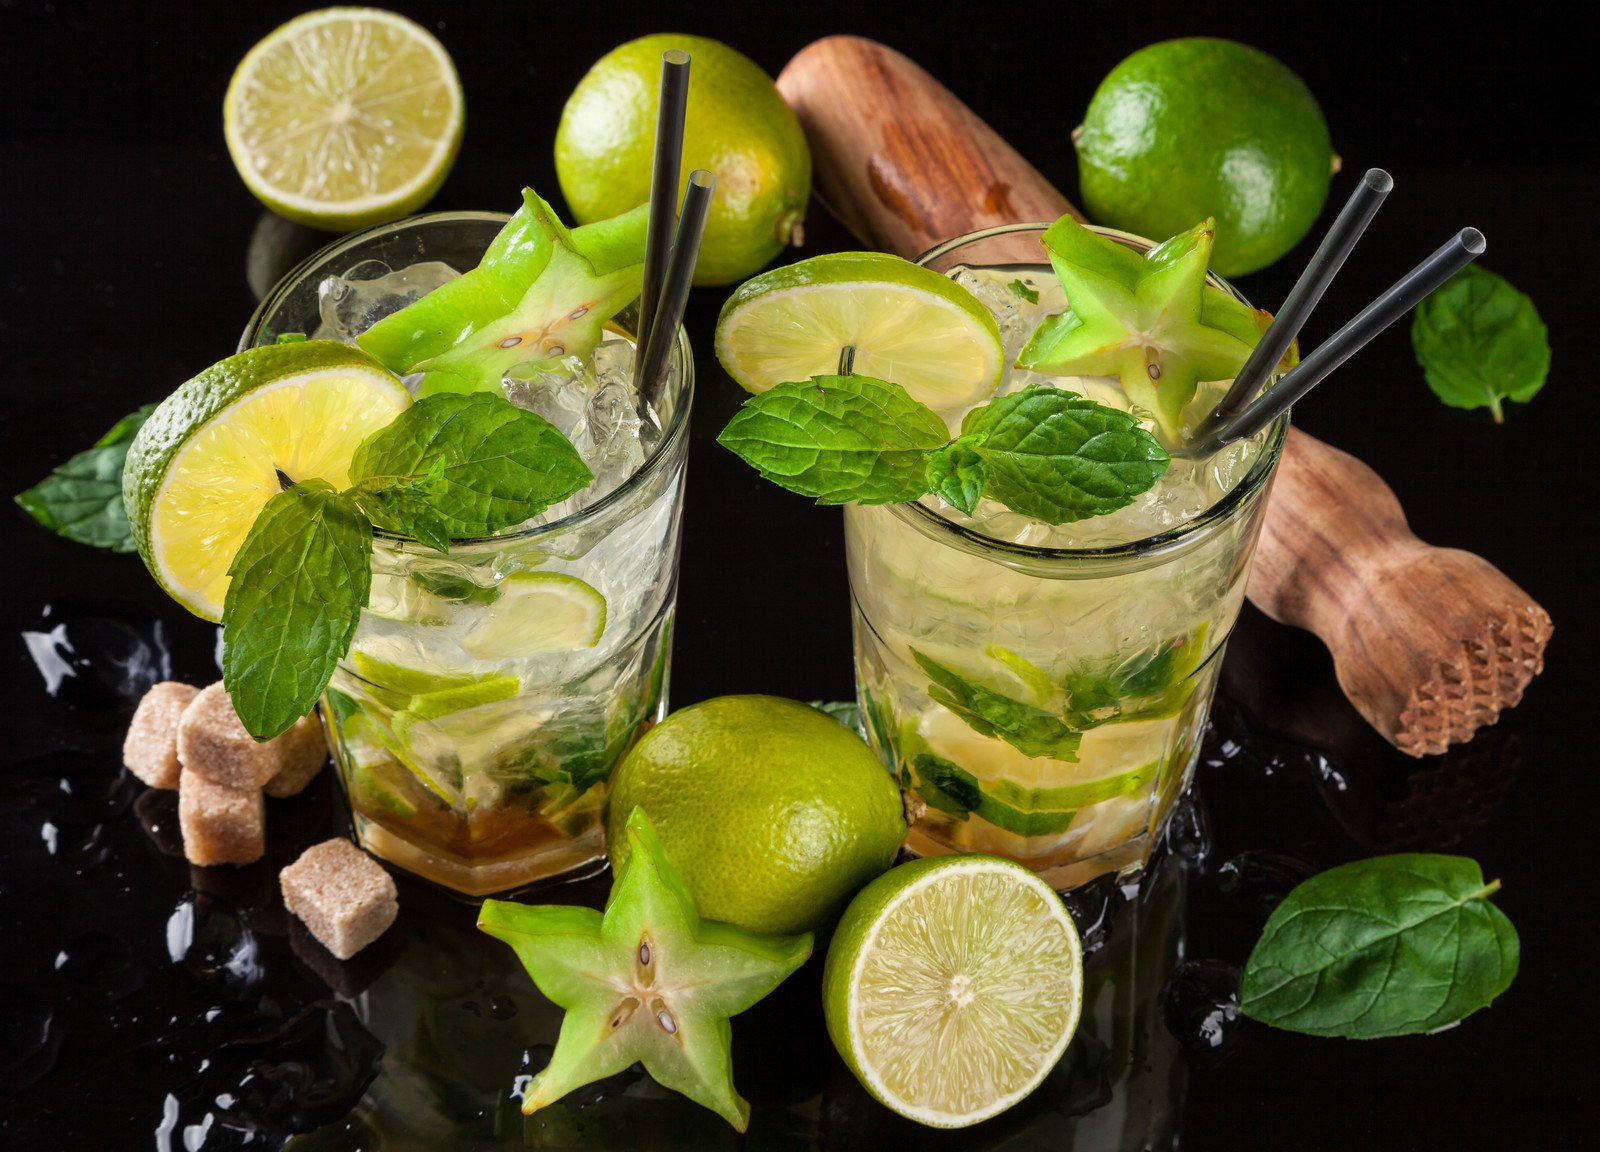 Mojito drinks  prepared by a blender and served on black stone